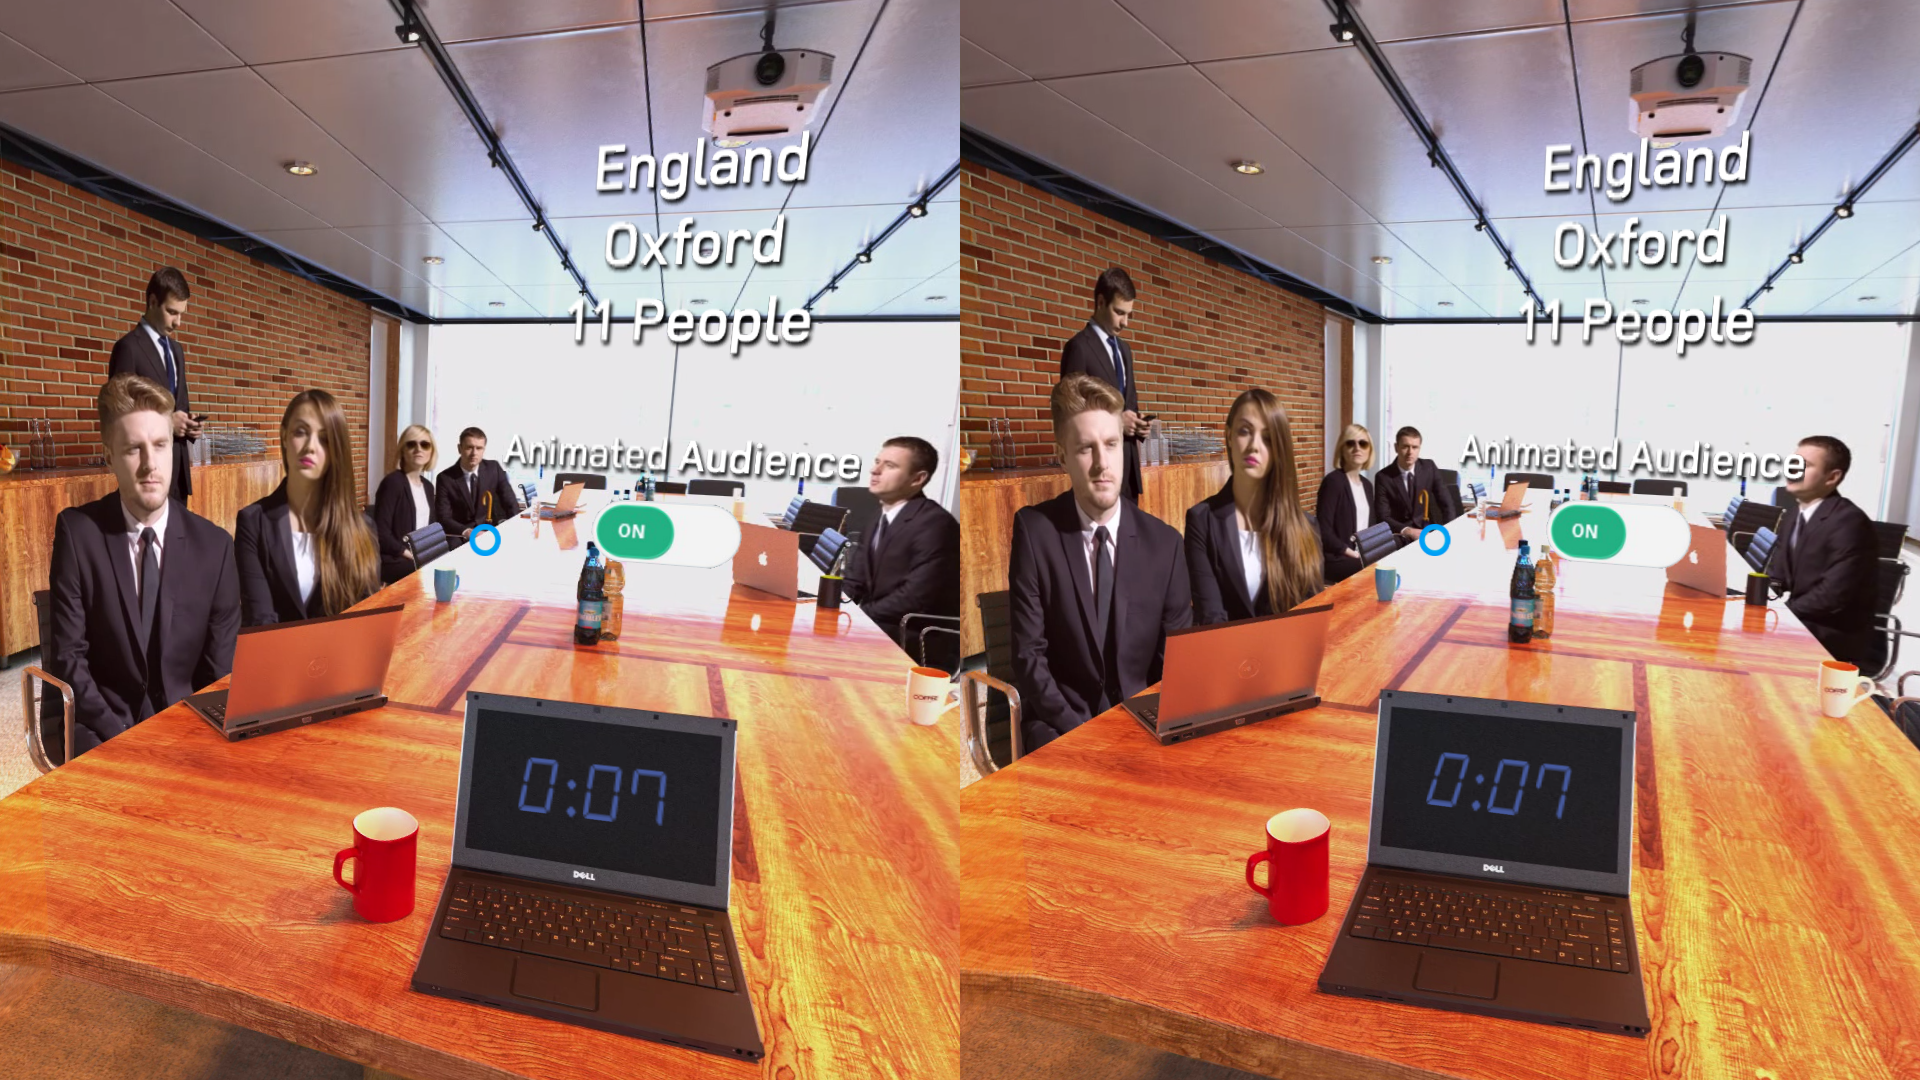 public speaking for cardboard lets you practice speaking in front of a virtual audience